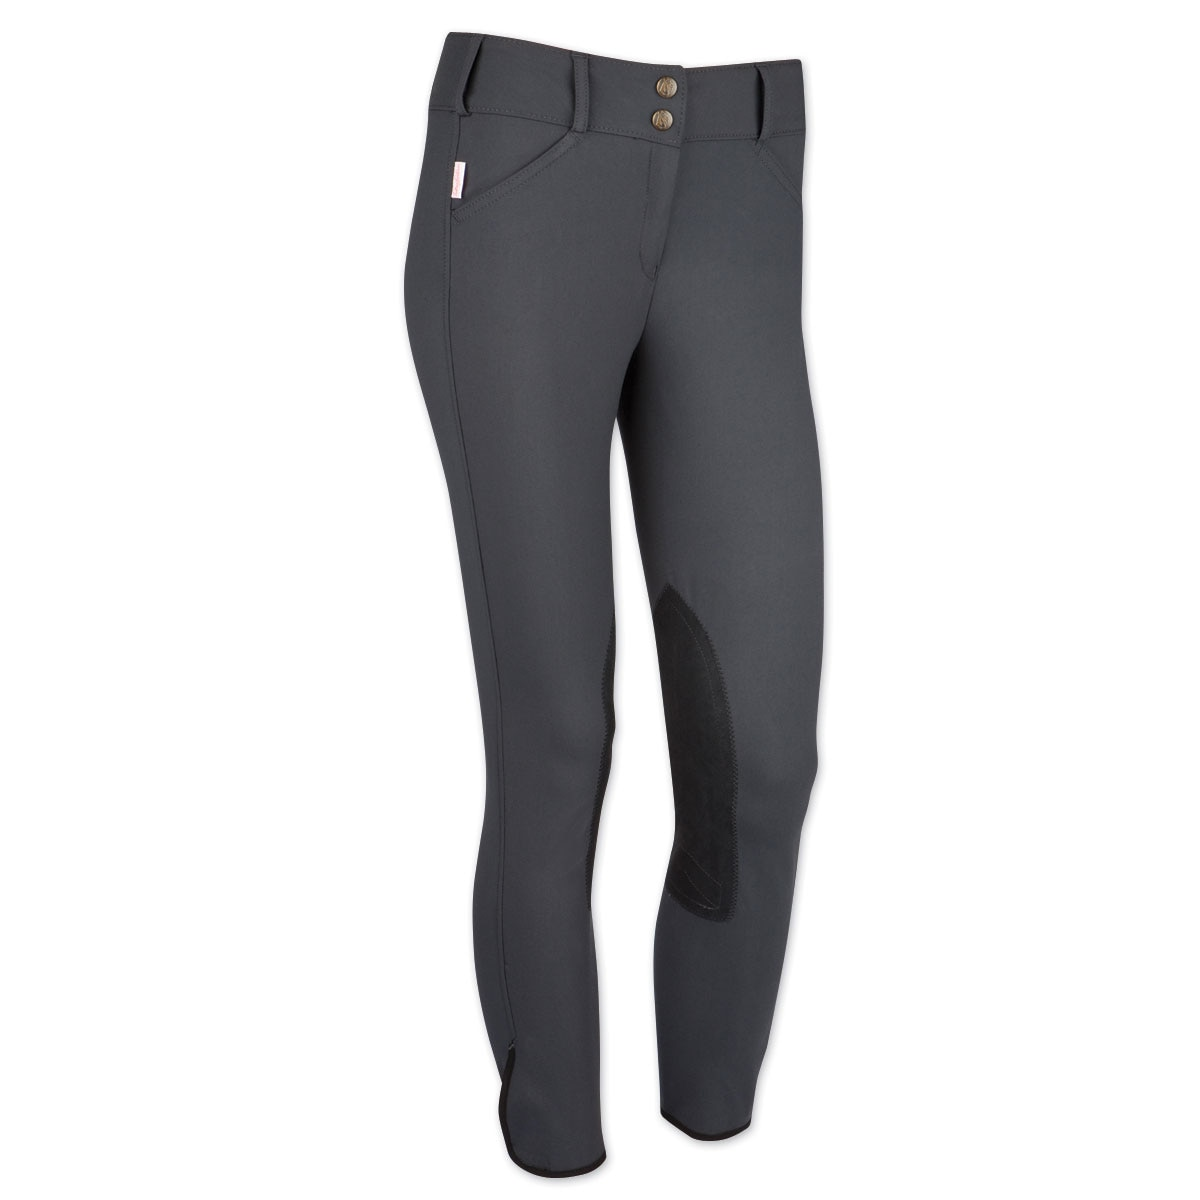 The Tailored Sportsman Professional Trophy Hunter Breech